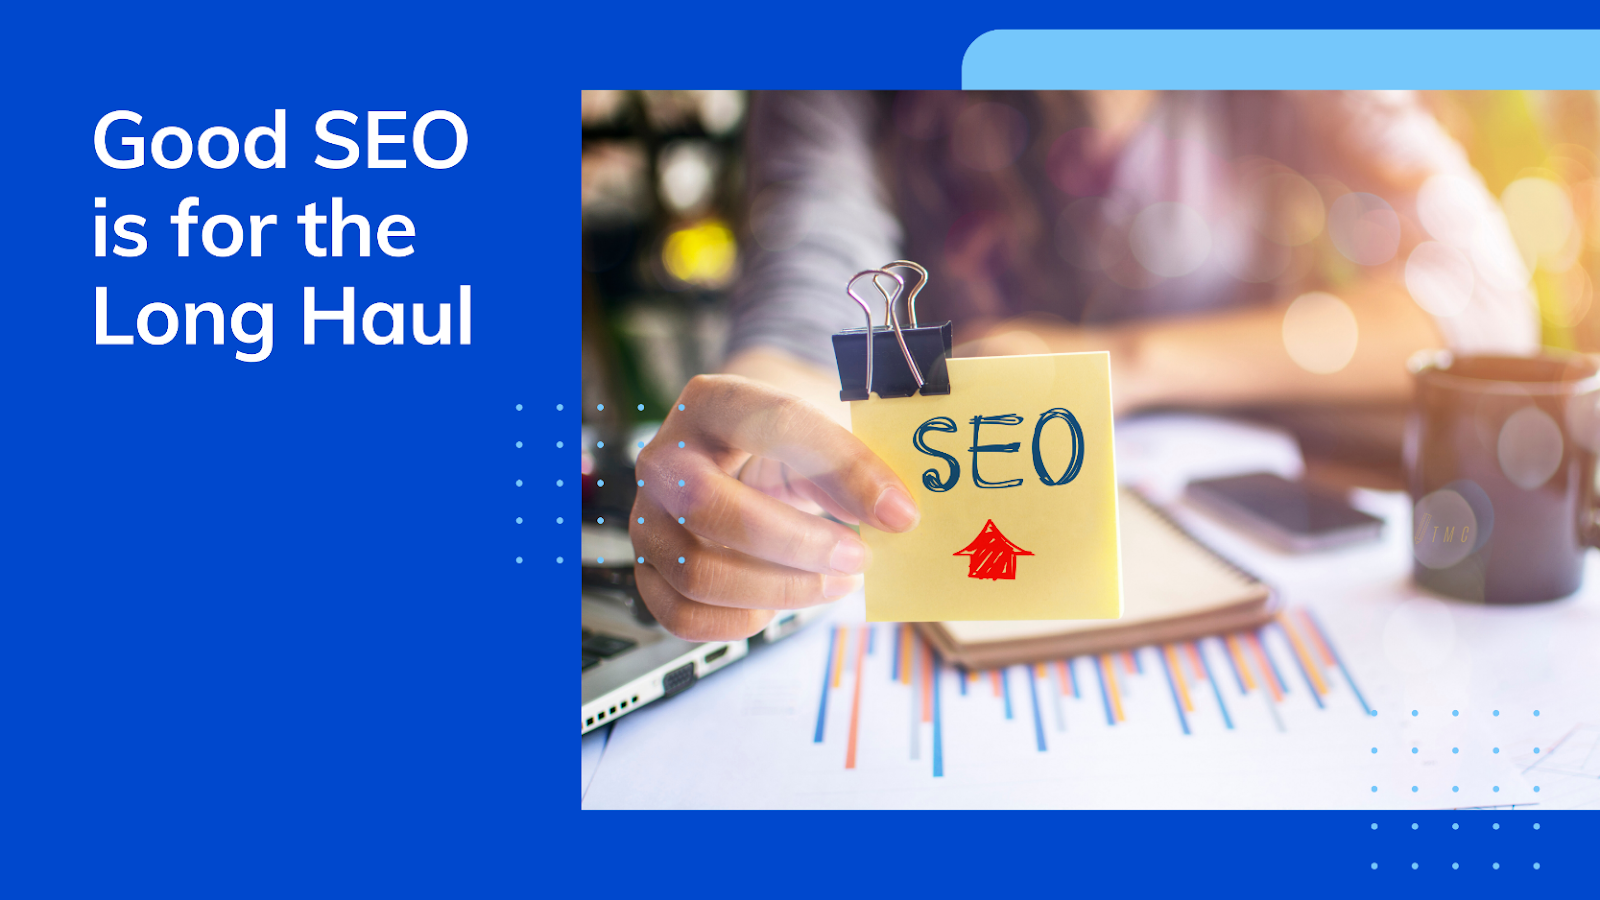 Good SEO is for the long haul